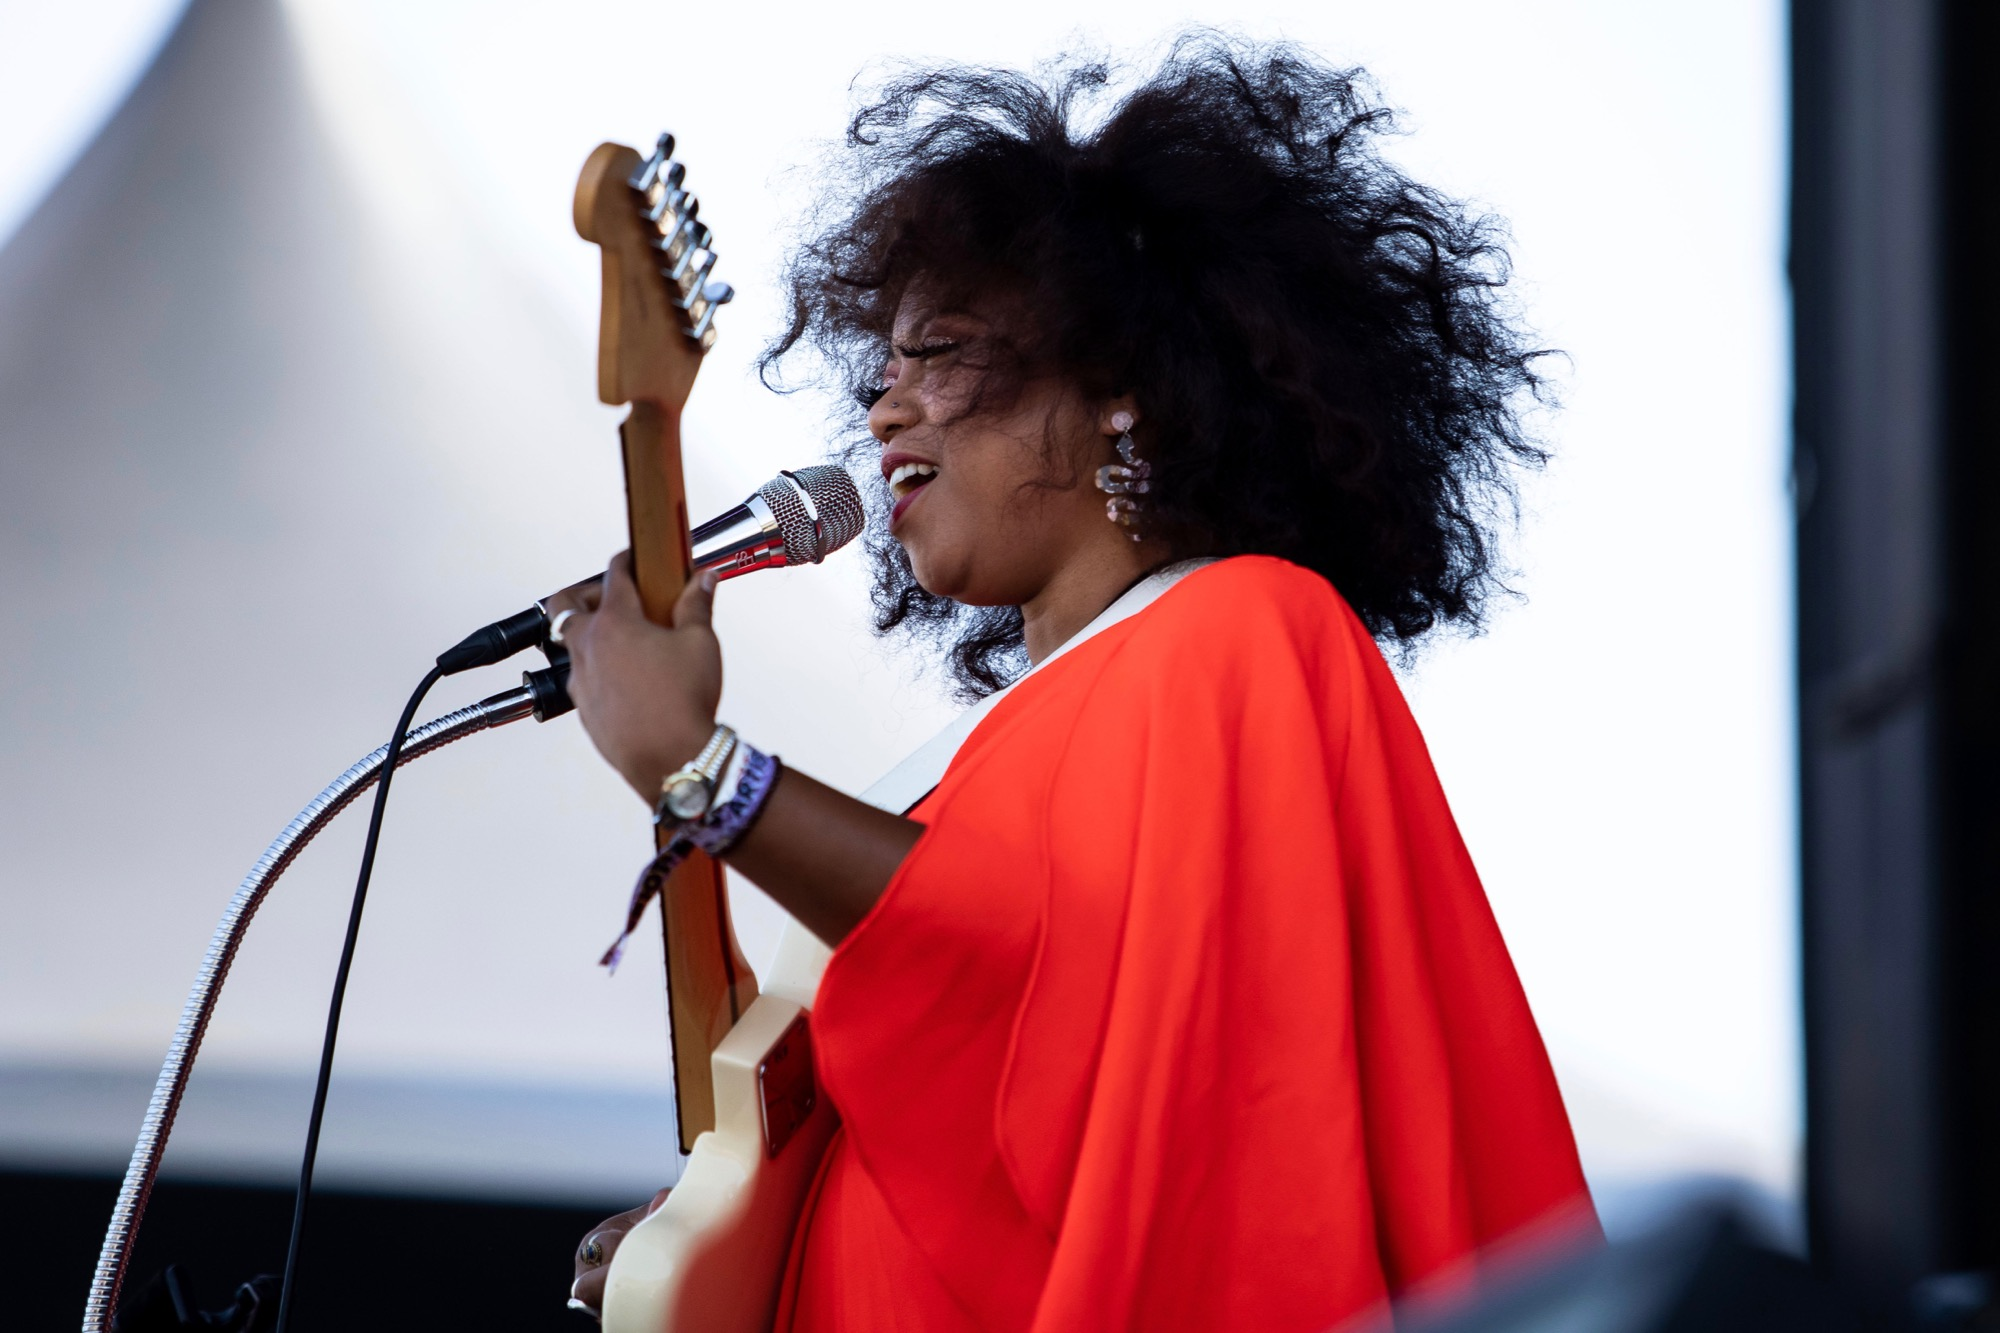 Seratones perform at Riot Fest in Chicago on Sept. 17, 2021.